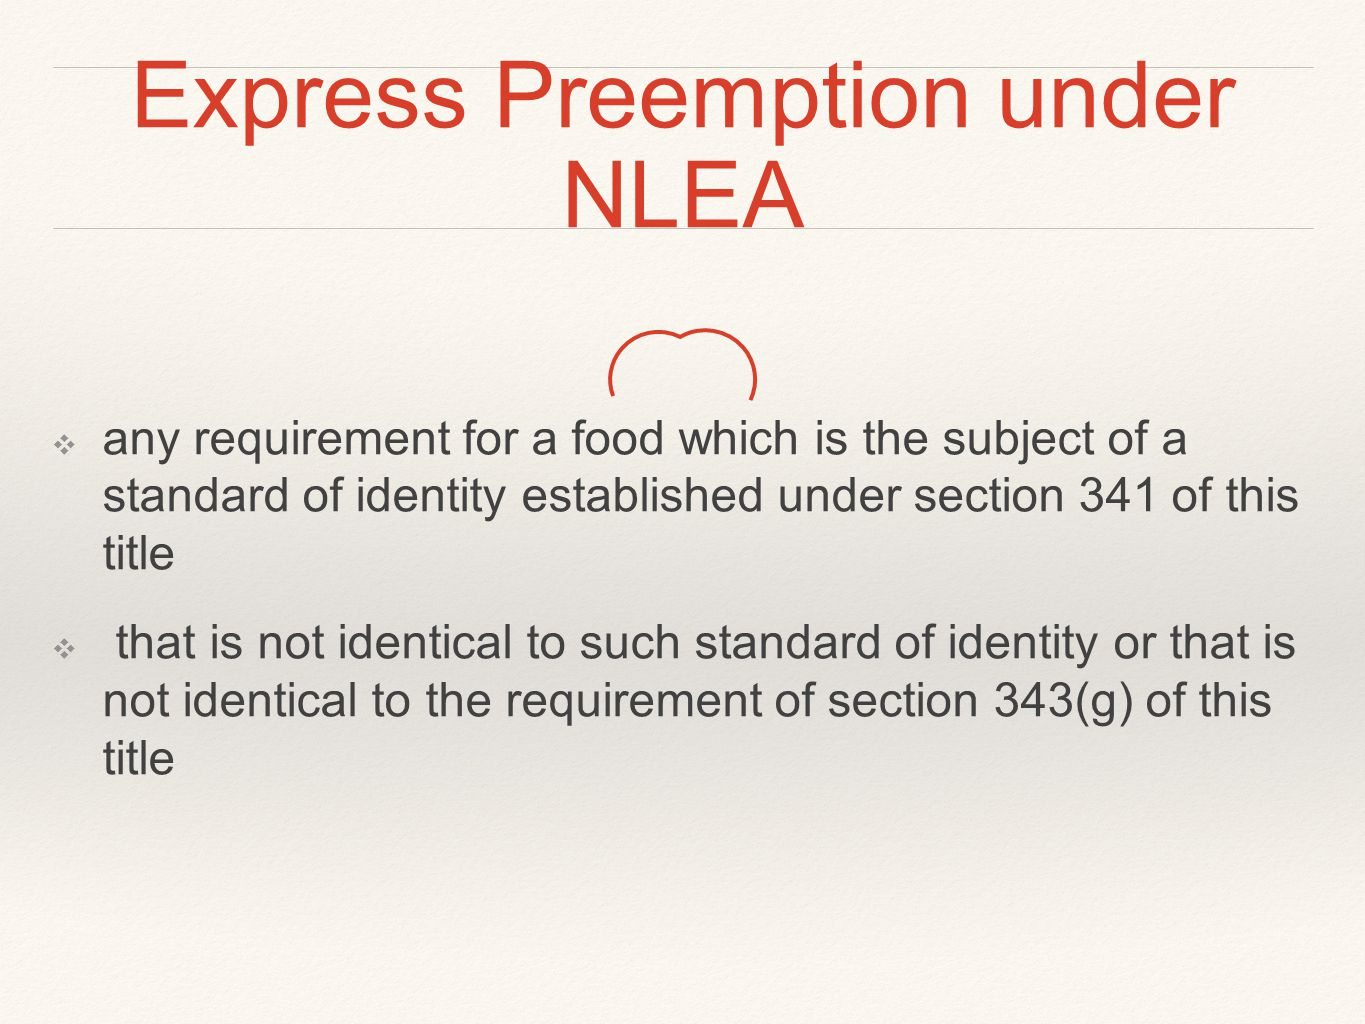 Express Preemption under NLEA